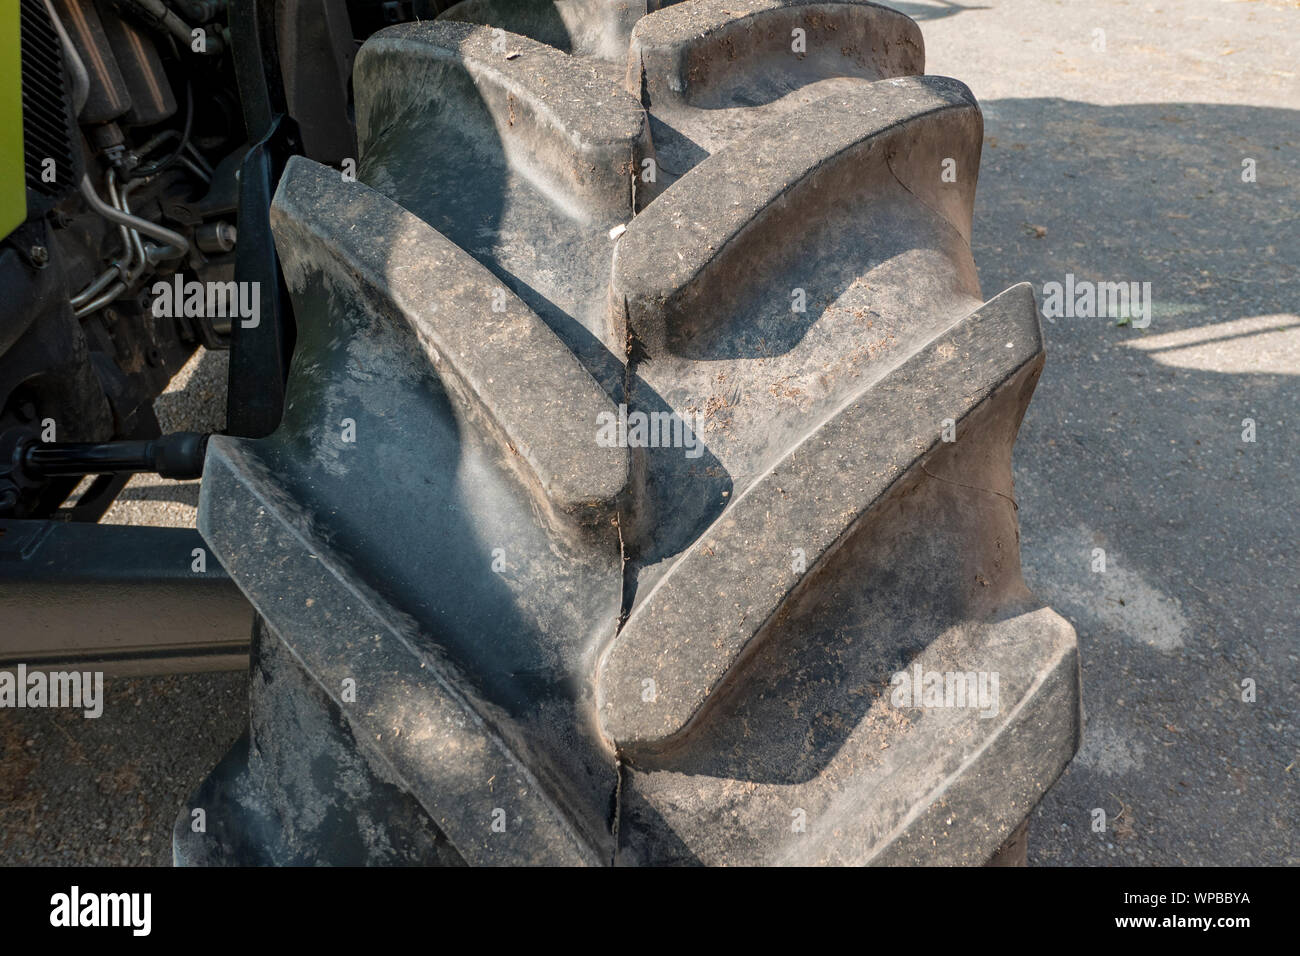 Tractor tyre tread pattern with very coarse studs Stock Photo